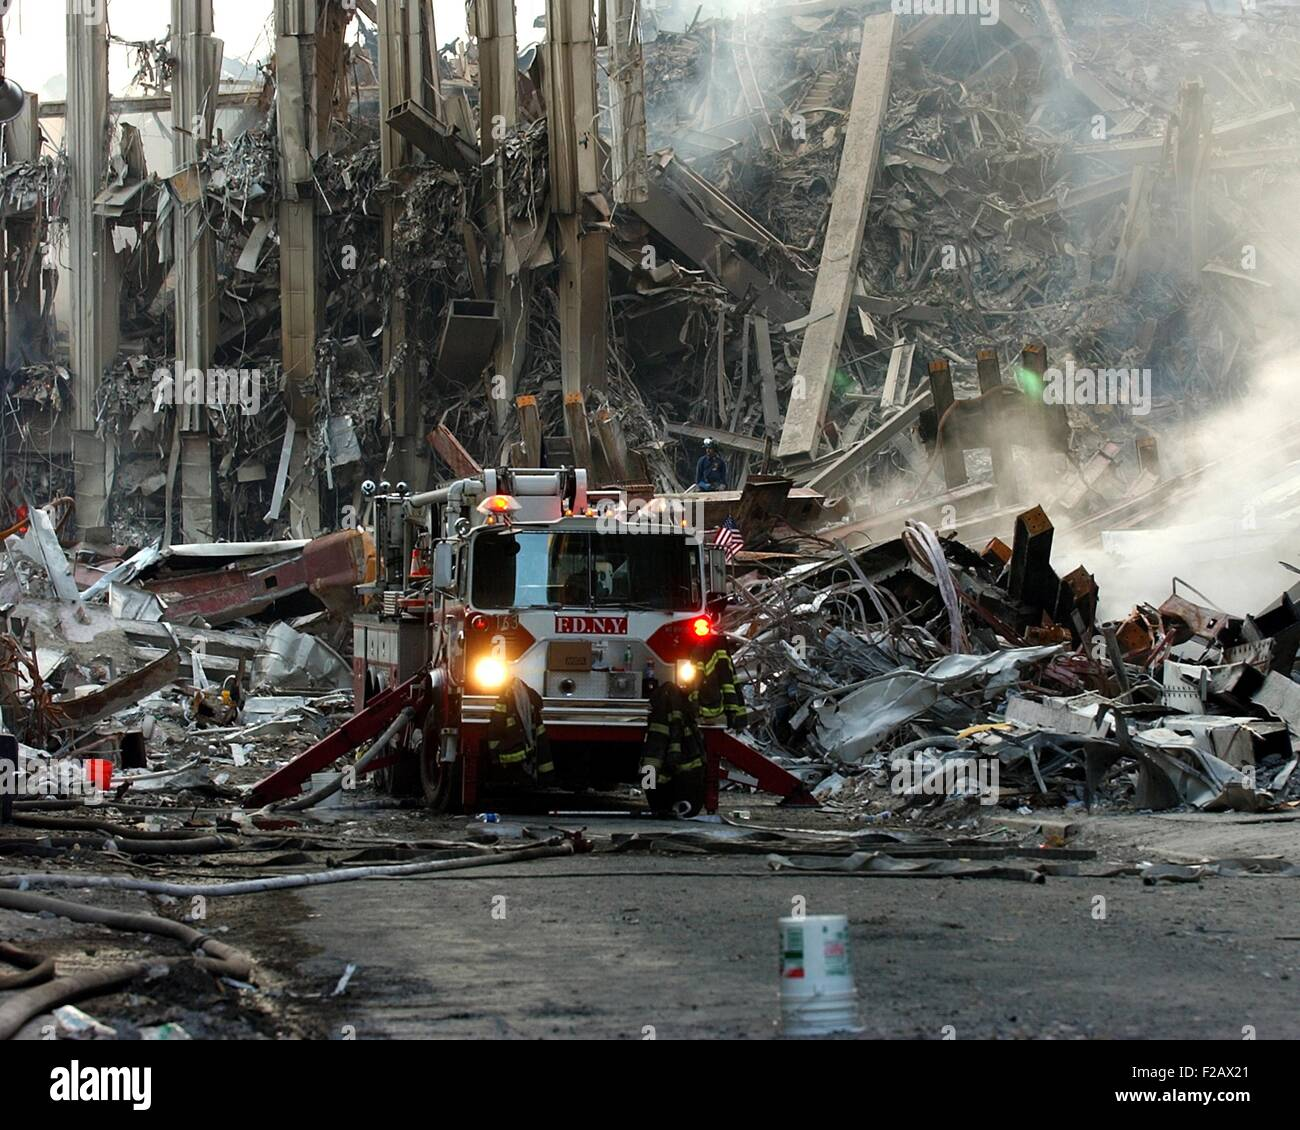 Fire engine by the ruins of the South Tower on Sept 16, 2001. World Trade Center, New York City, after September - Stock Image